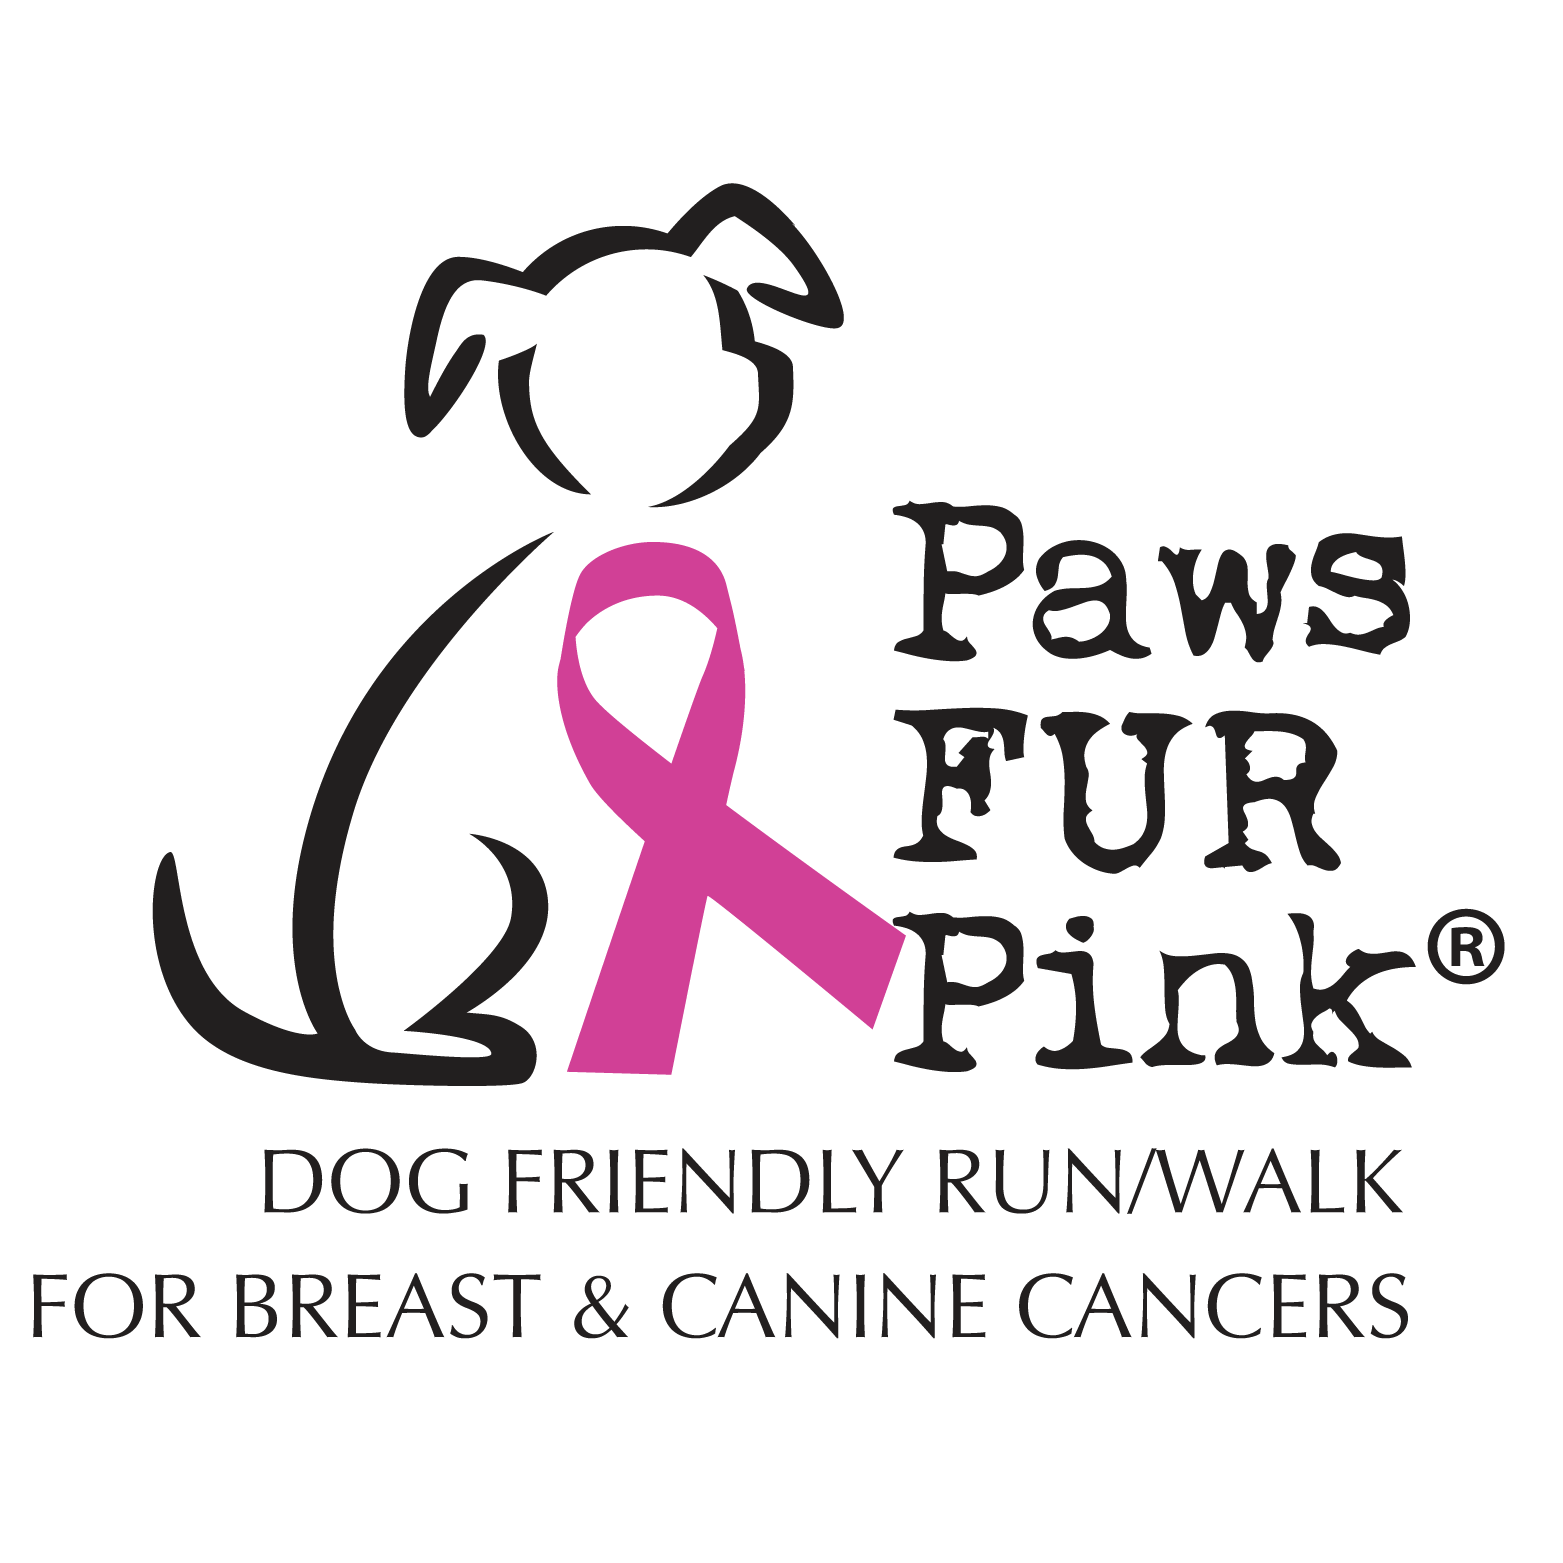 2018 OC Paws FUR Pink Photo